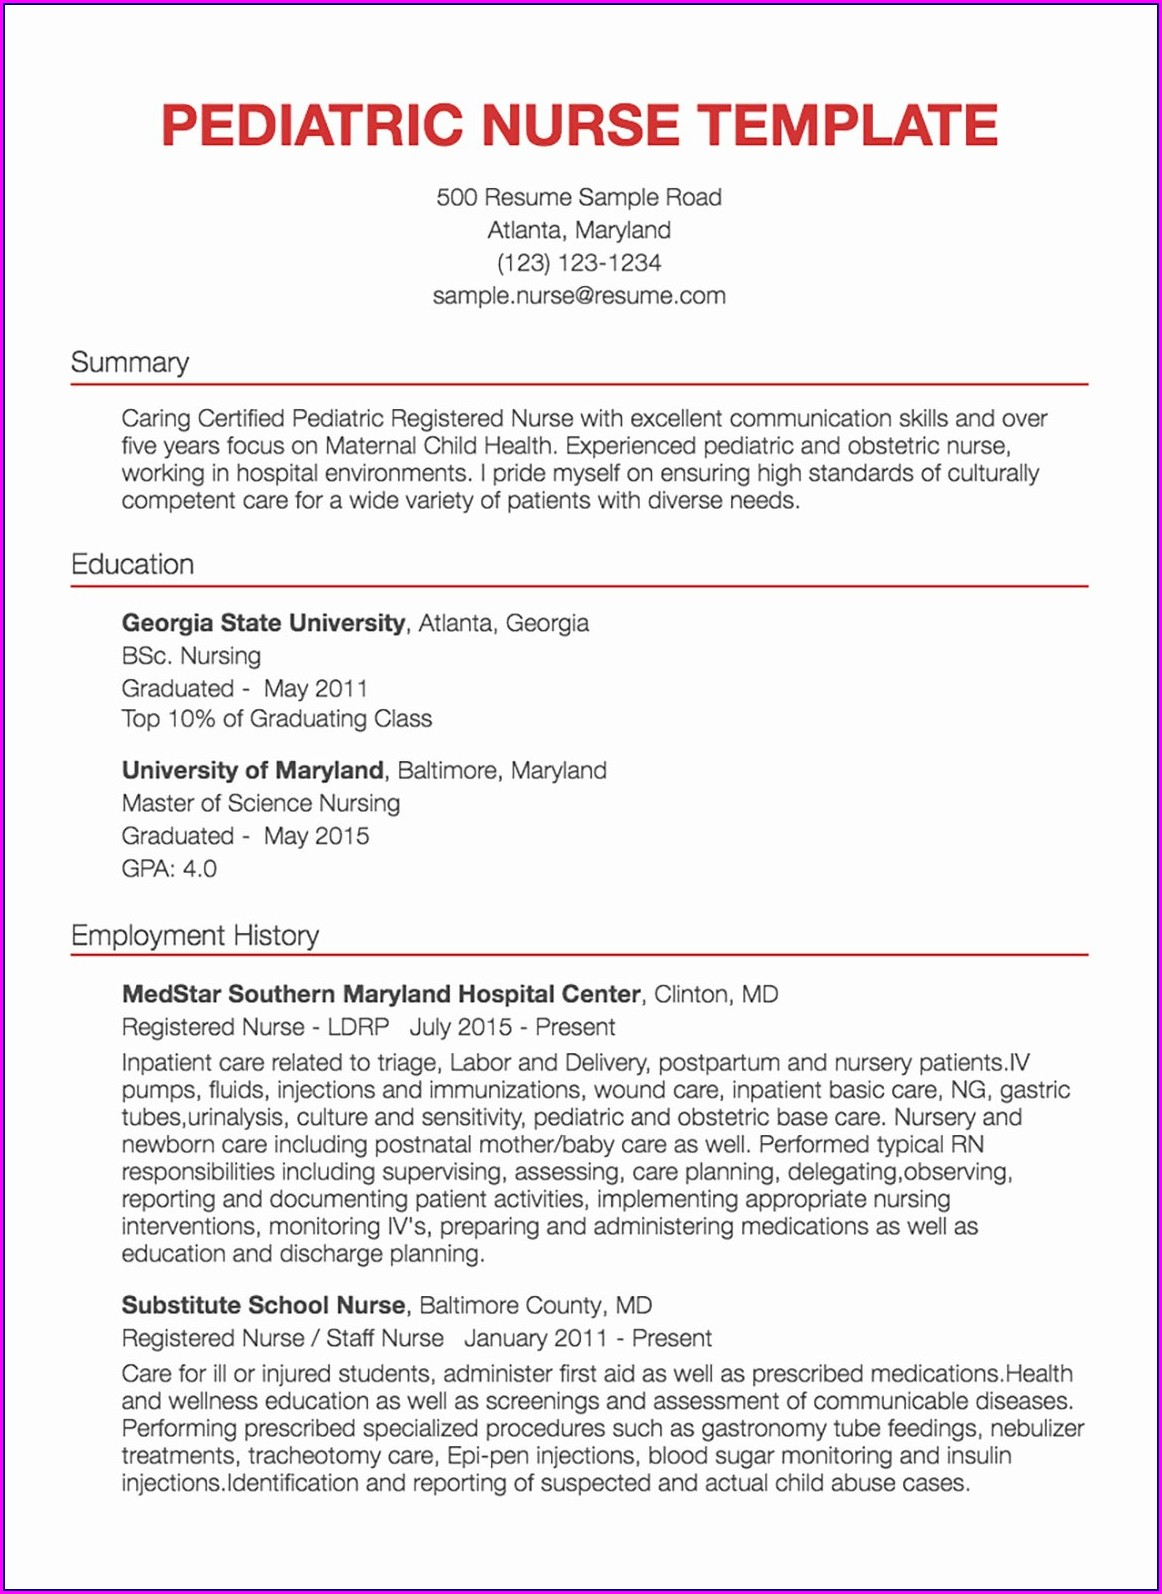 Sample Resume For Experienced Registered Nurse